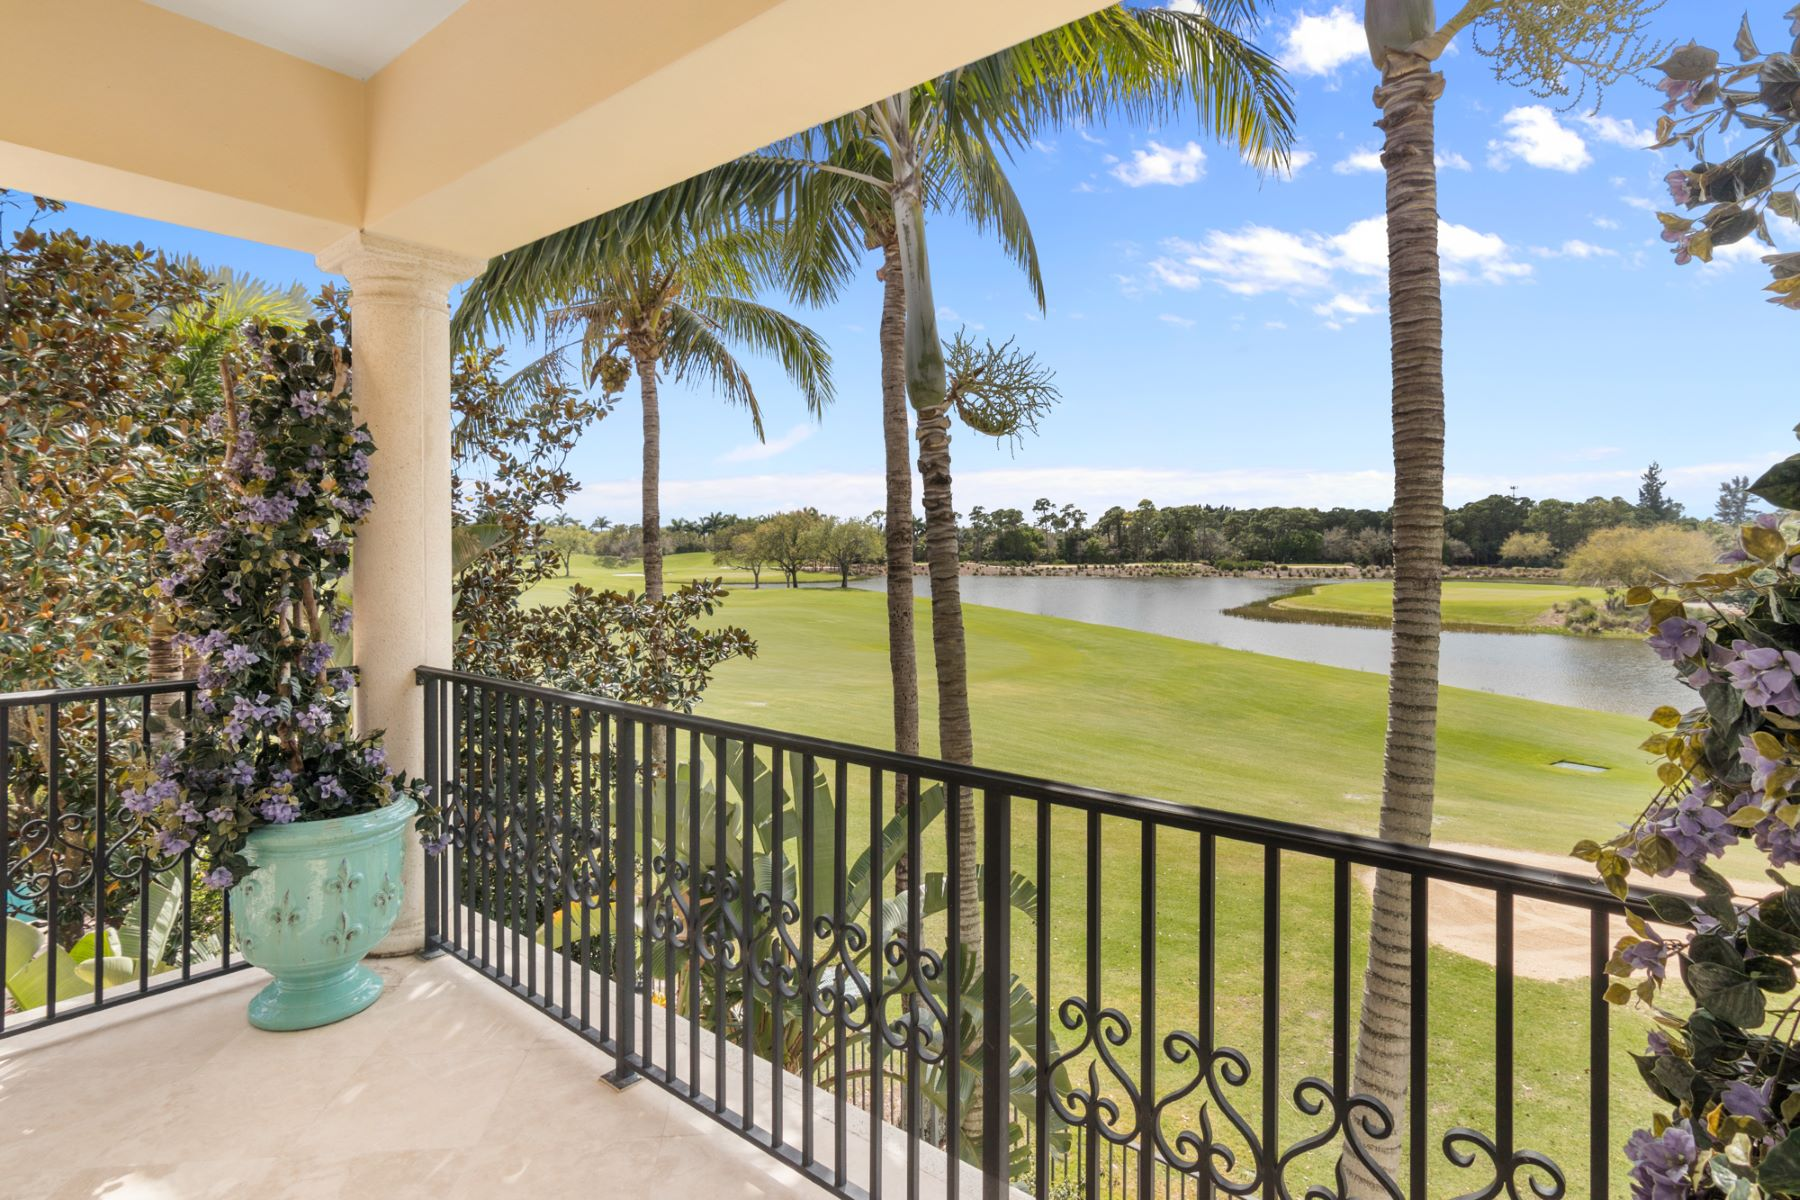 Single Family Home for Sale at 11127 Green Bayberry Drive Old Palm Golf Club, Palm Beach Gardens, Florida, 33418 United States